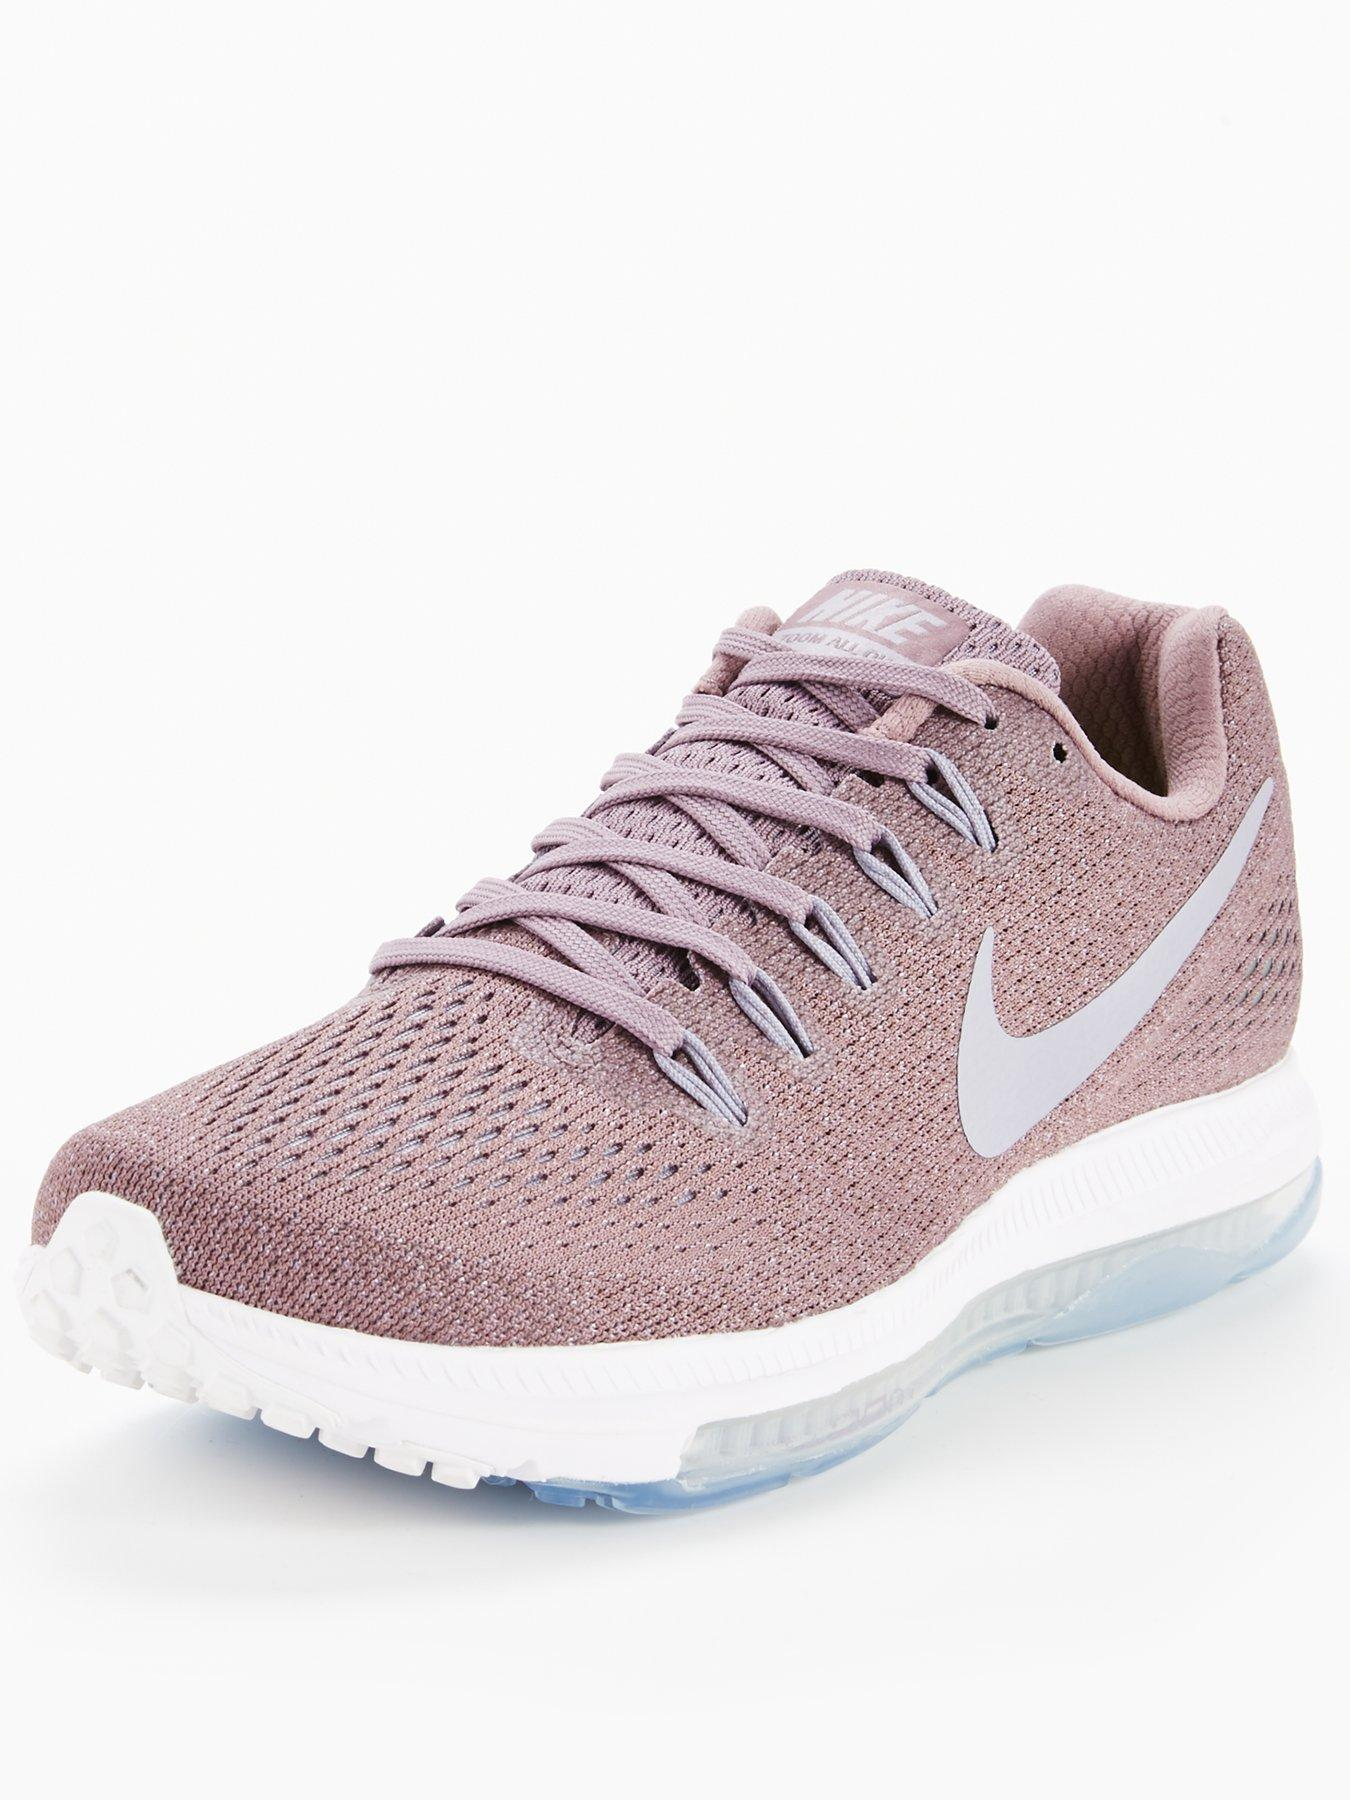 Nike Zoom All Out Low 1600164075 Women's Shoes Nike Trainers